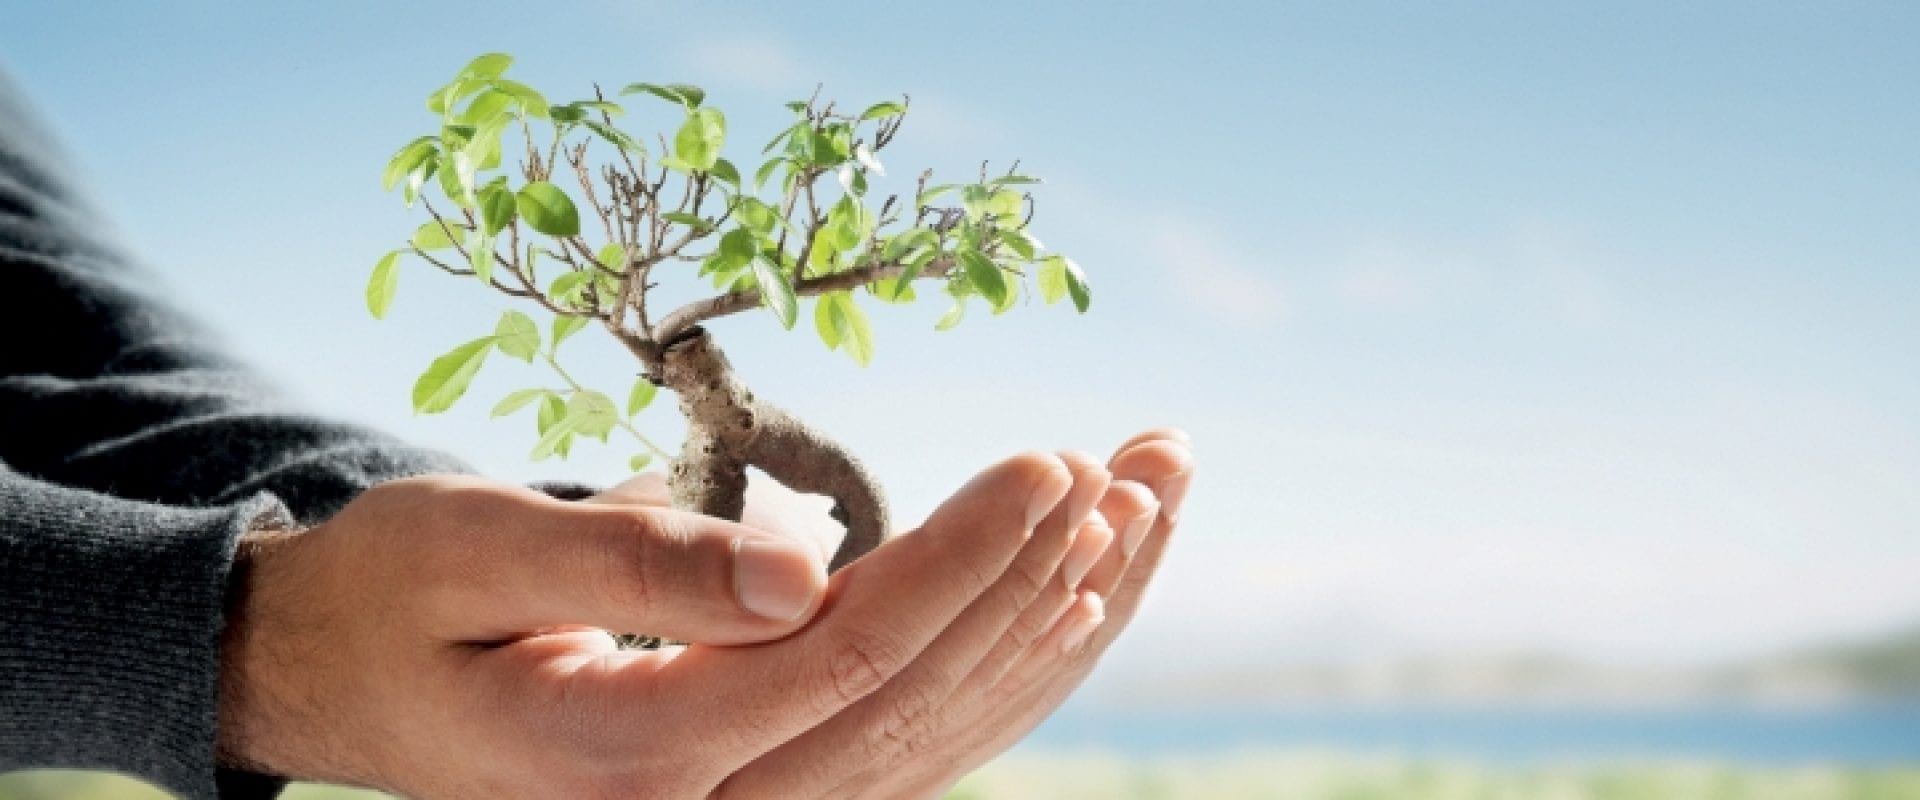 17044World Earth Day – Let's Save Energy!